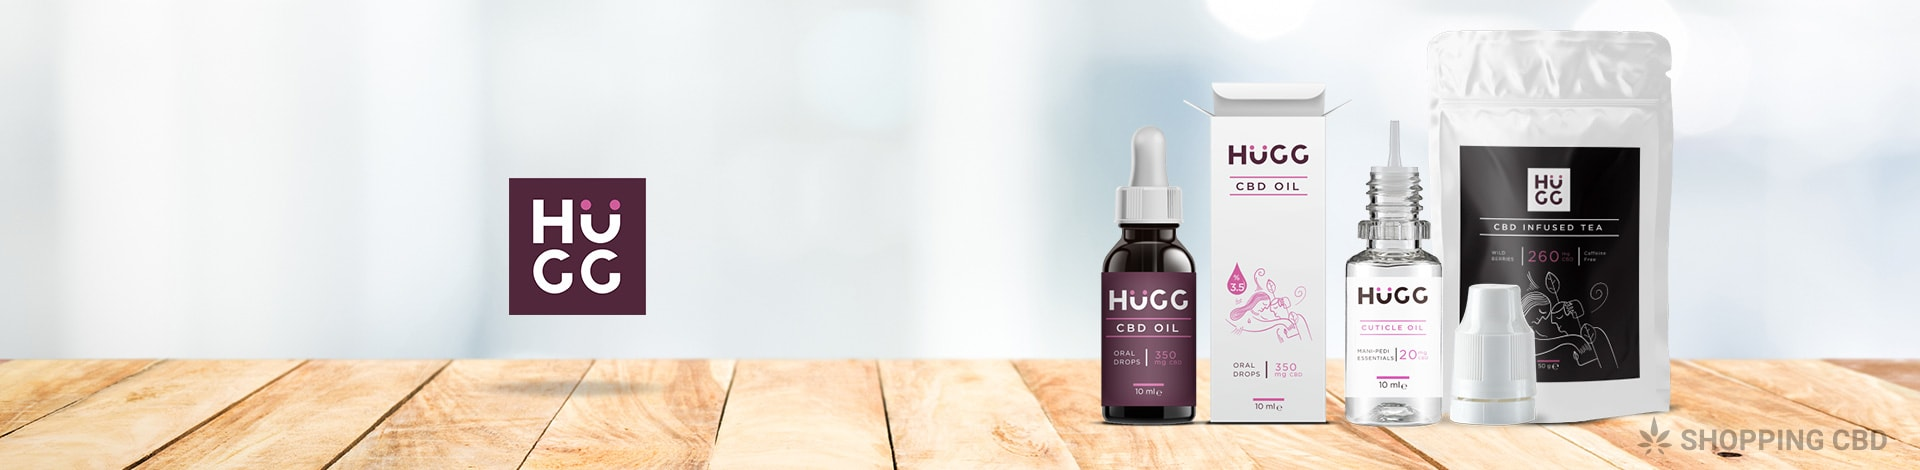 hugg-cbd-review